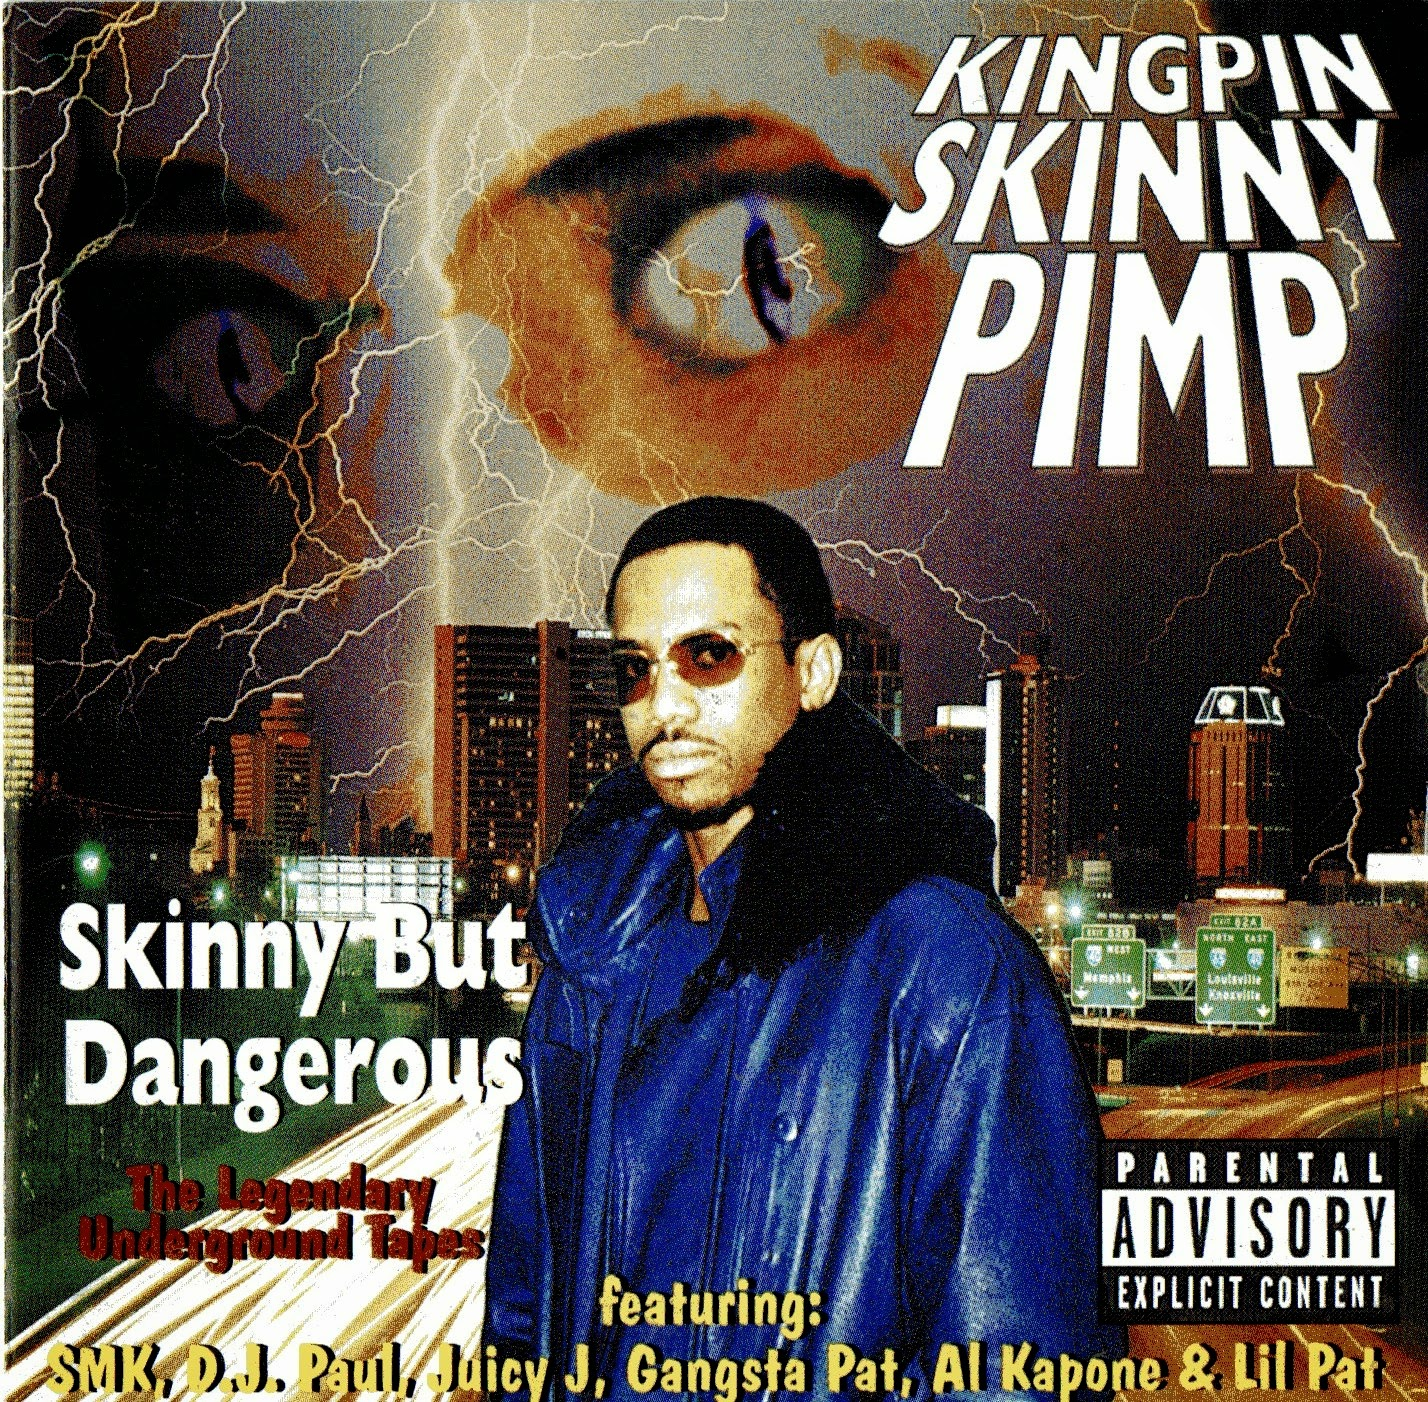 Kingpin Skinny Pimp - Skinny But Dangerous